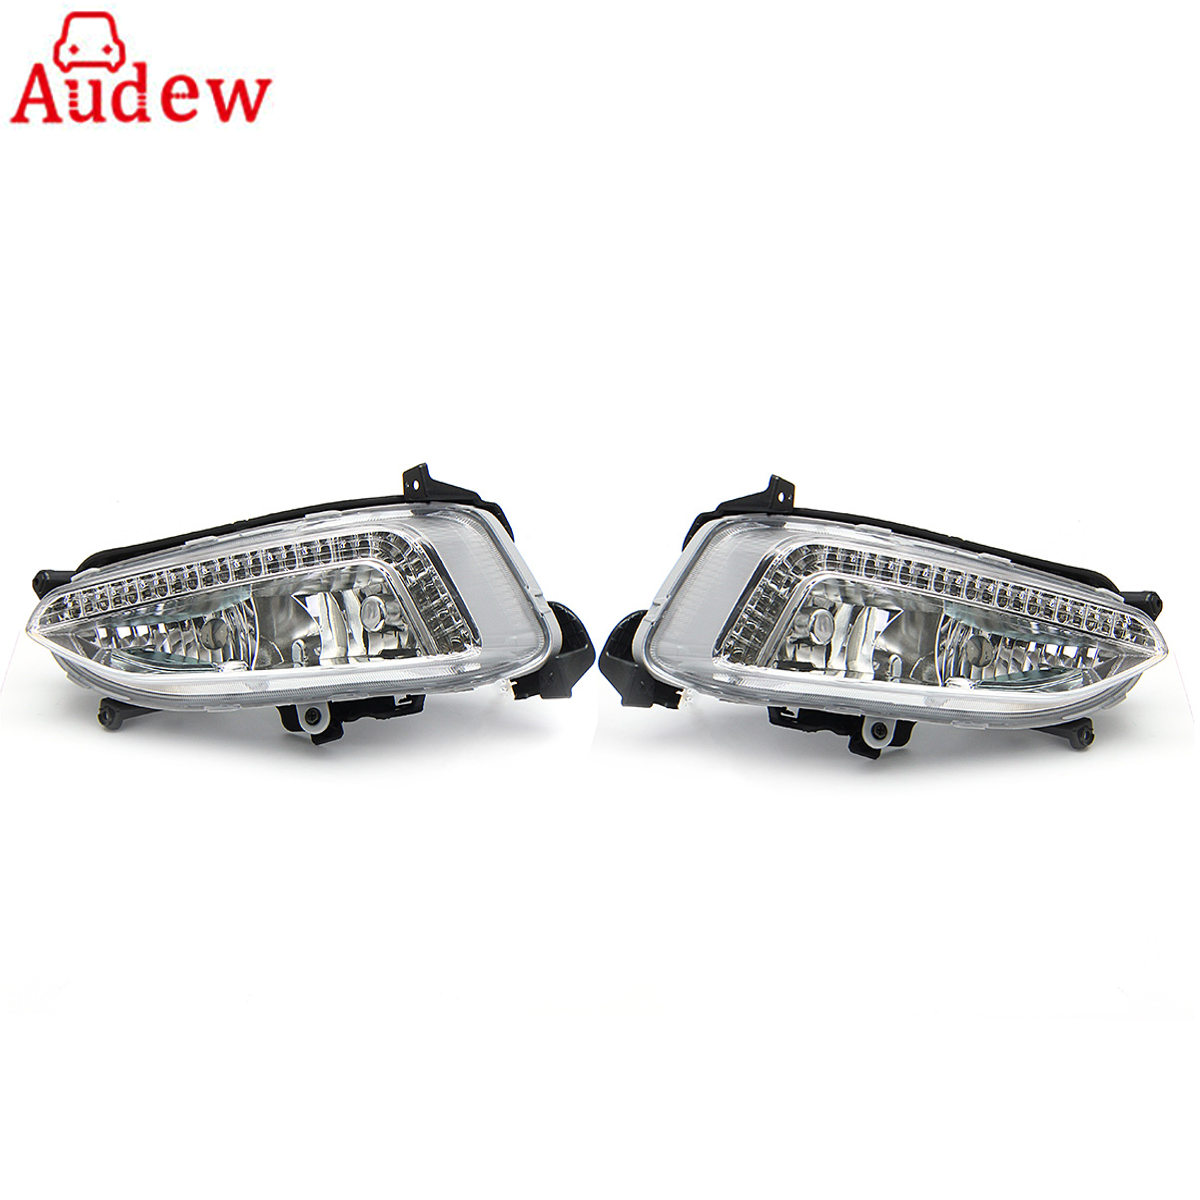 1Pair LED Car Light Assembly DRL Daytime Running Light Fog Lamp For Hyundai IX45 Santa Fe 2013 2014 DC 12V 5500K~6500K seintex 85749 hyundai santa fe 2013 black